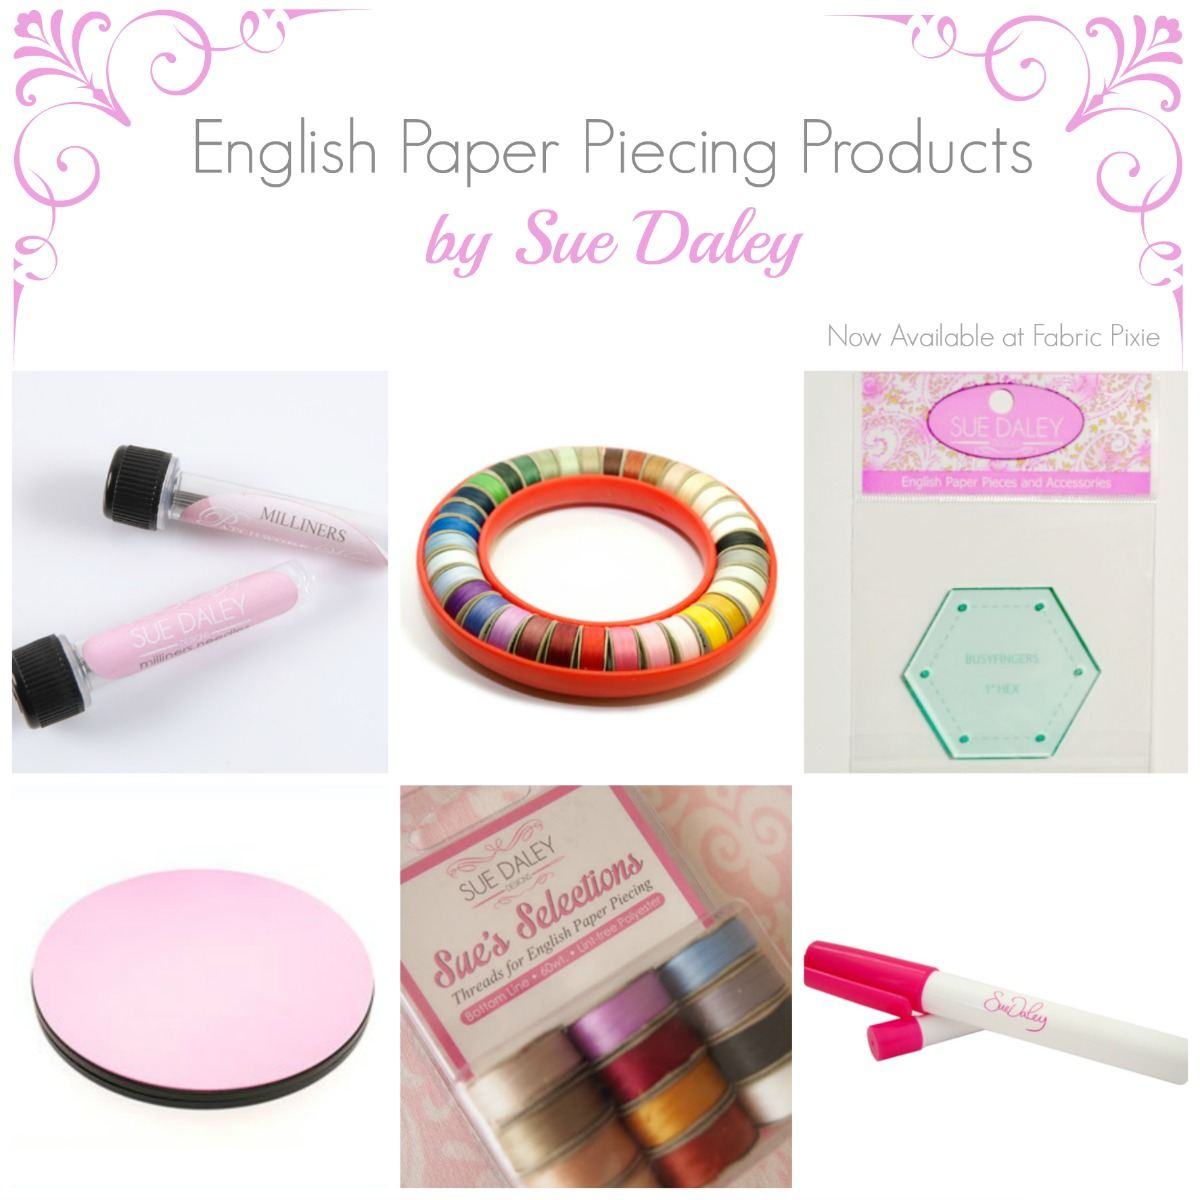 English Paper Piecing Products by Sue Daley